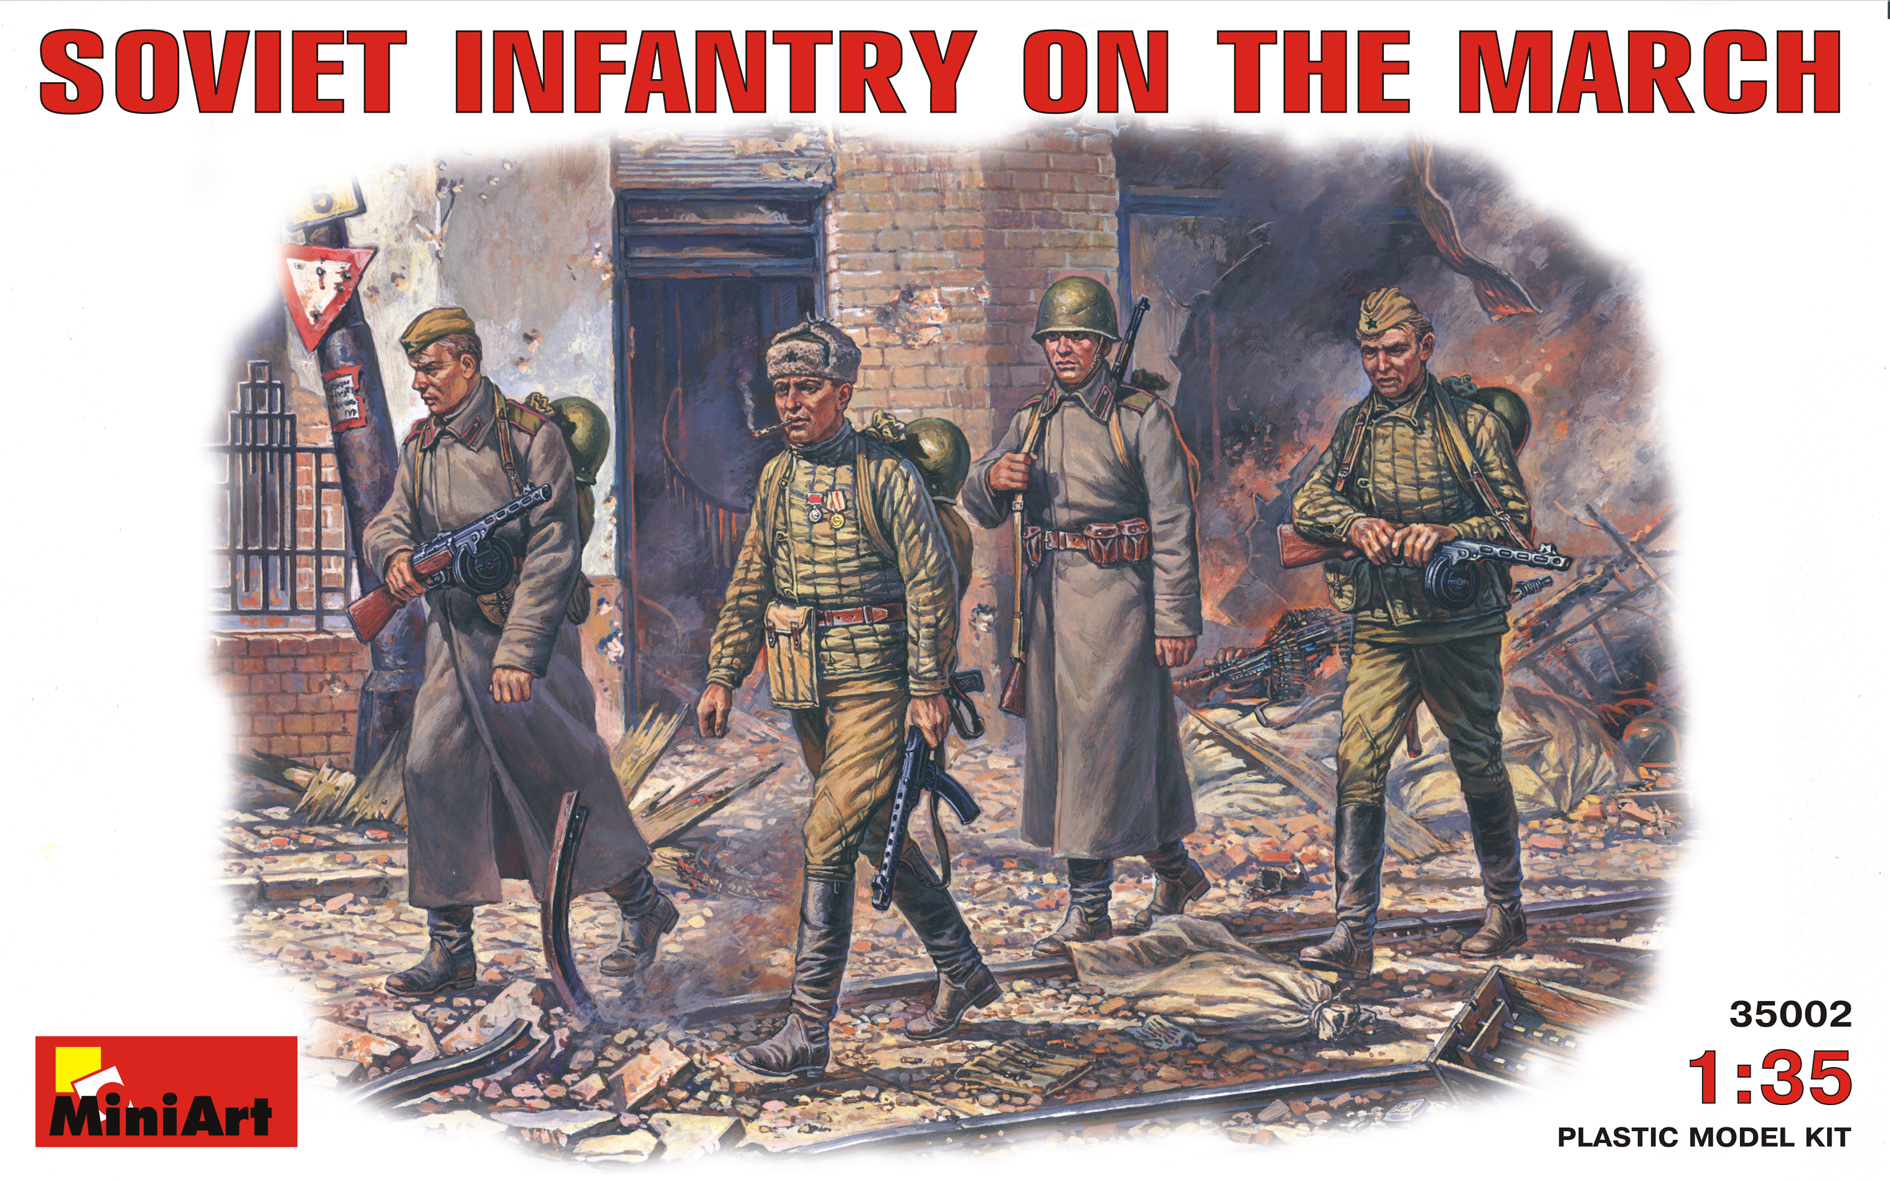 SOVIET INFANTRY ON THE MARCH